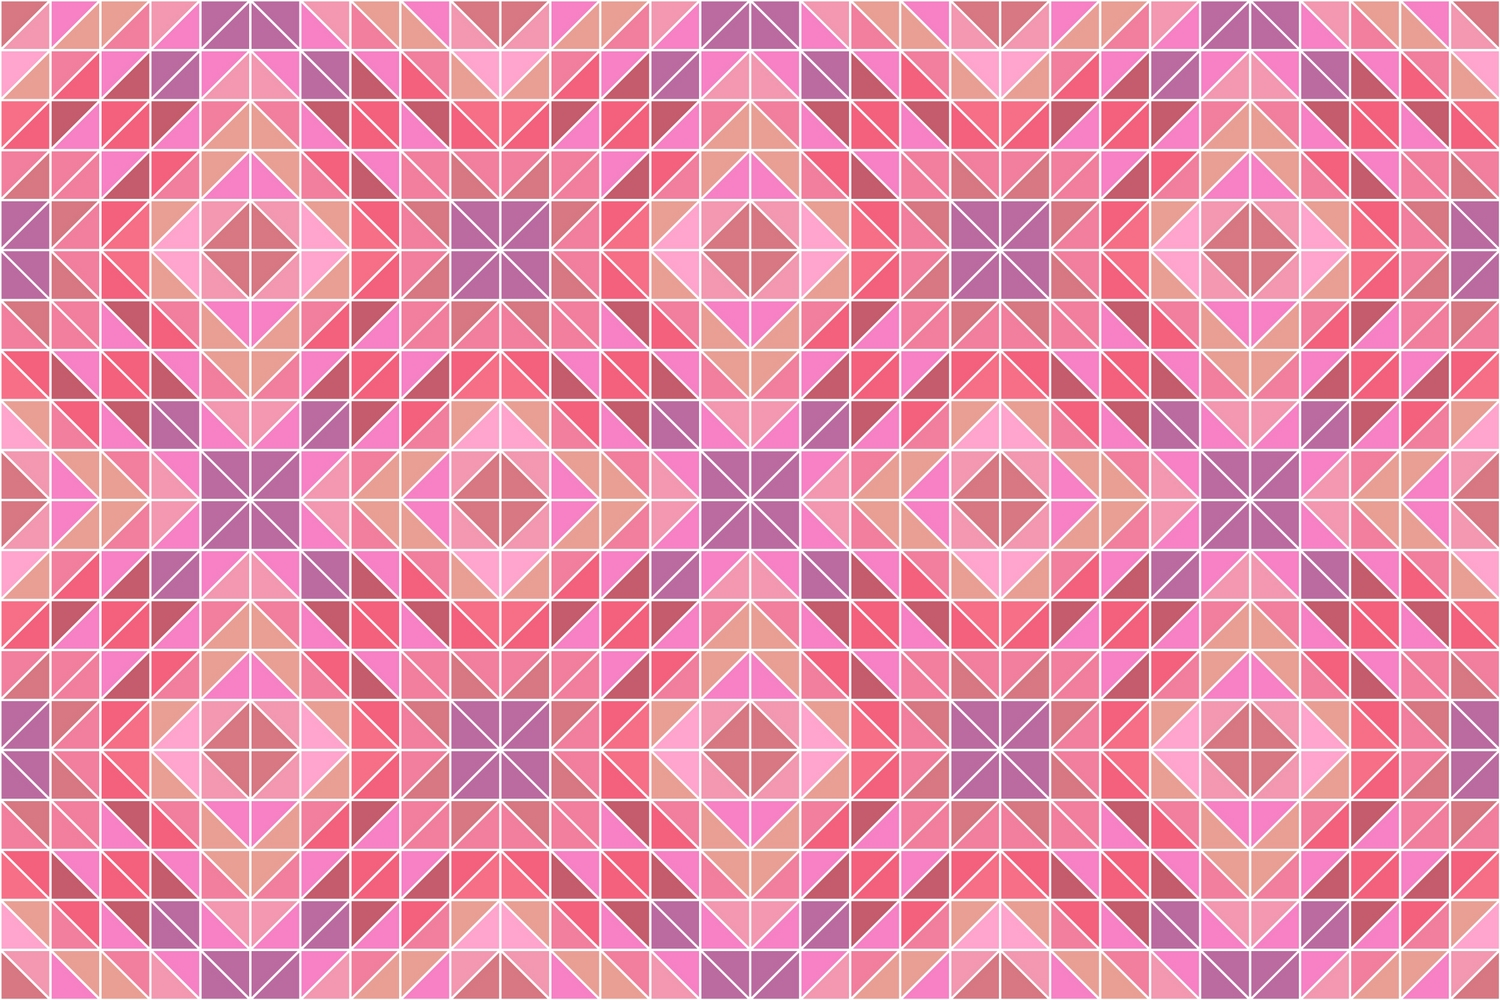 108 colorful seamless kaleidoscope triangle patterns (AI, EPS, JPG 5000x5000) example image 3